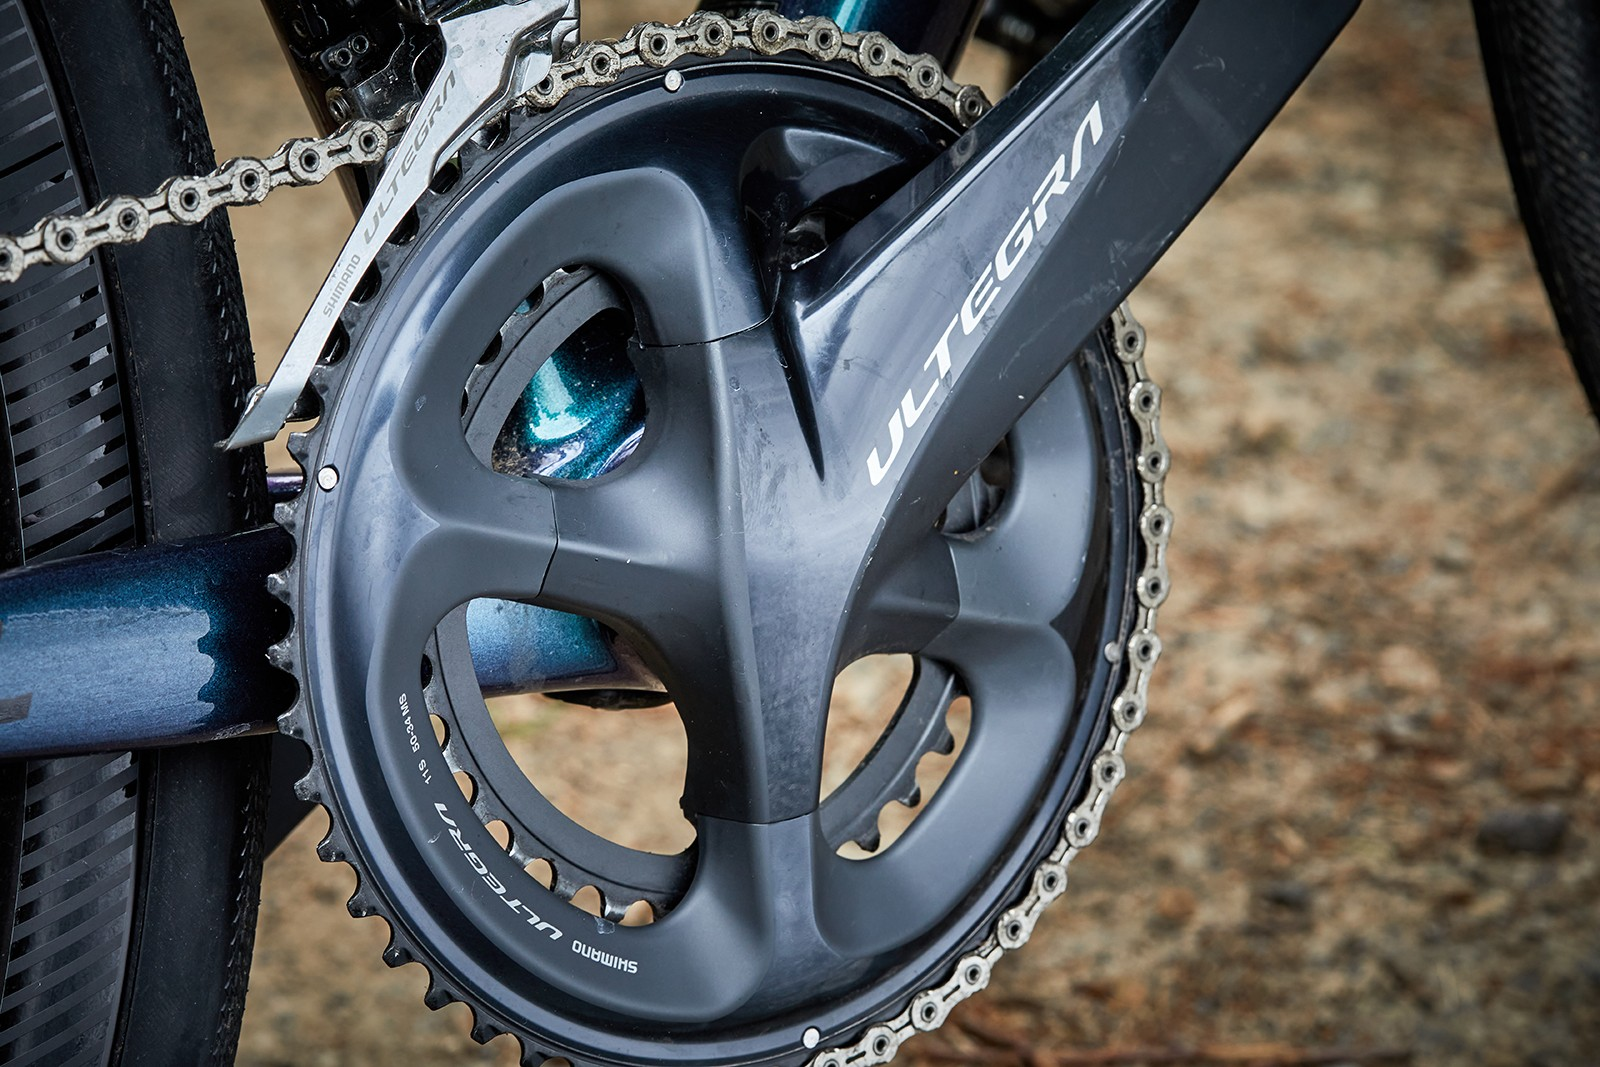 A full Ultegra groupset is found on the Liv Avail Advanced Pro 2 women's road bike